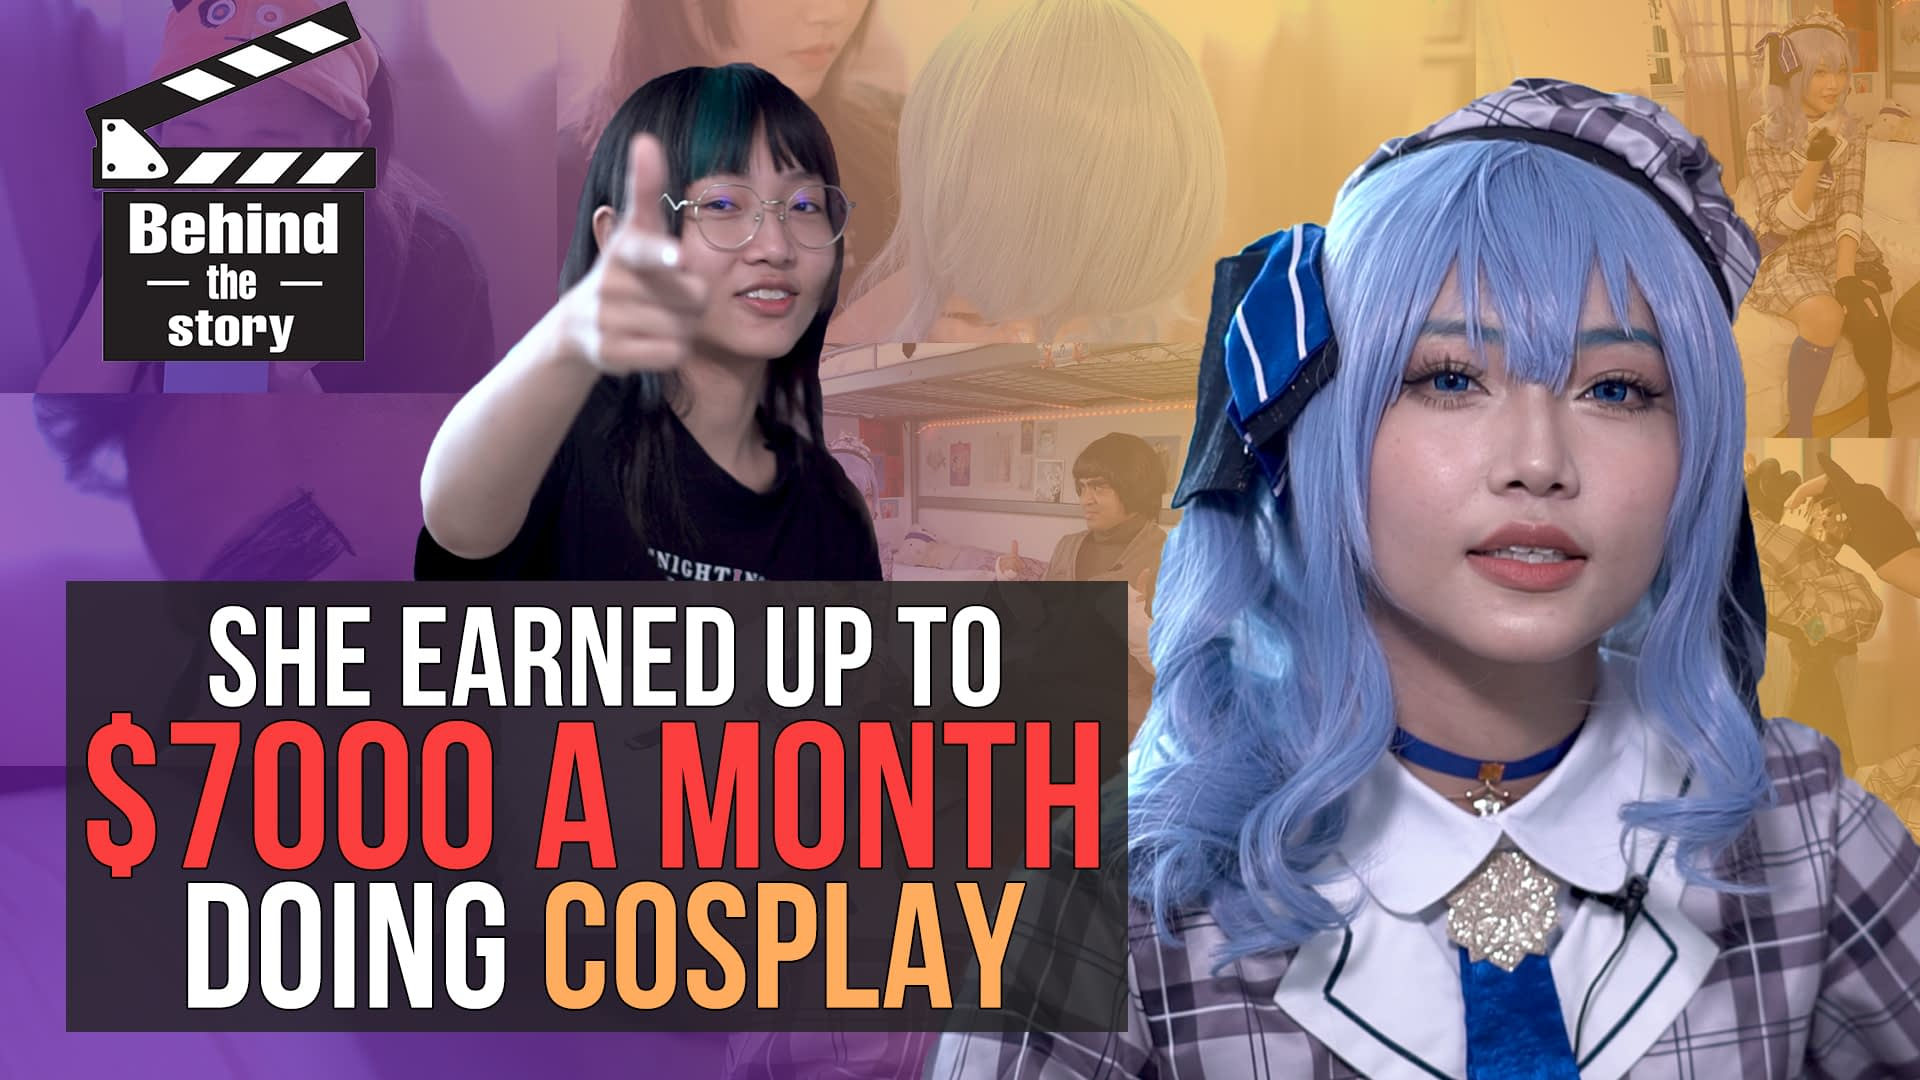 She earned up to $7000 a month doing cosplay